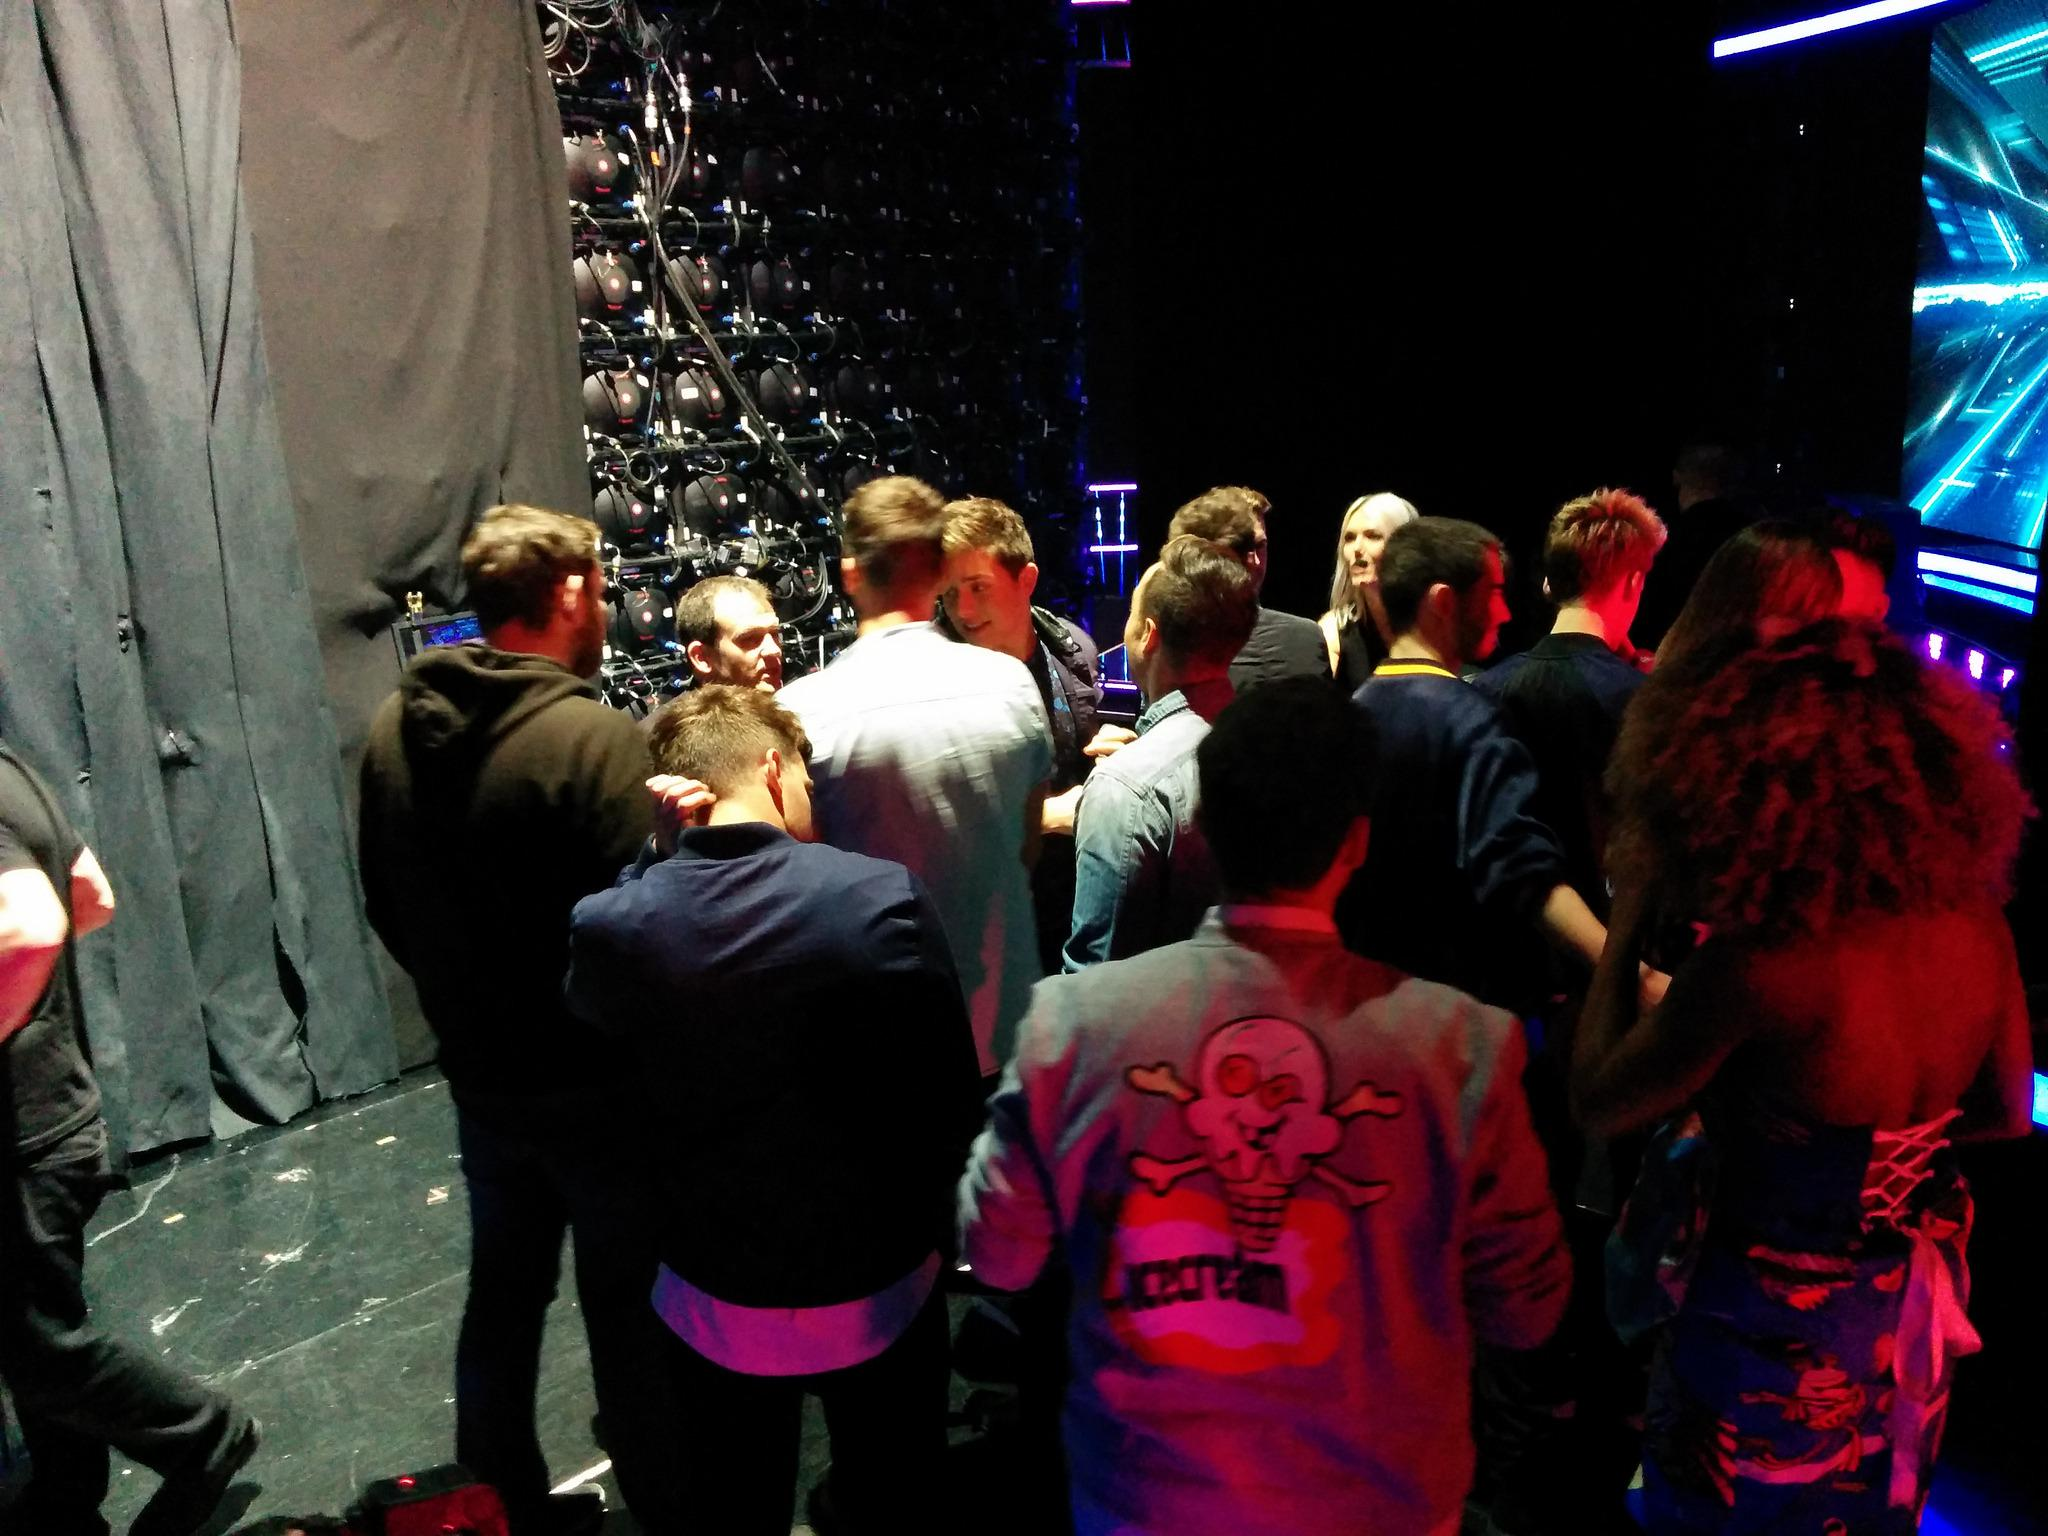 It's all getting very tense backstage...   Lines/app votes are now closed.  #XFactorResults = COMING UP...😱 http://t.co/RzQWBXrXmE